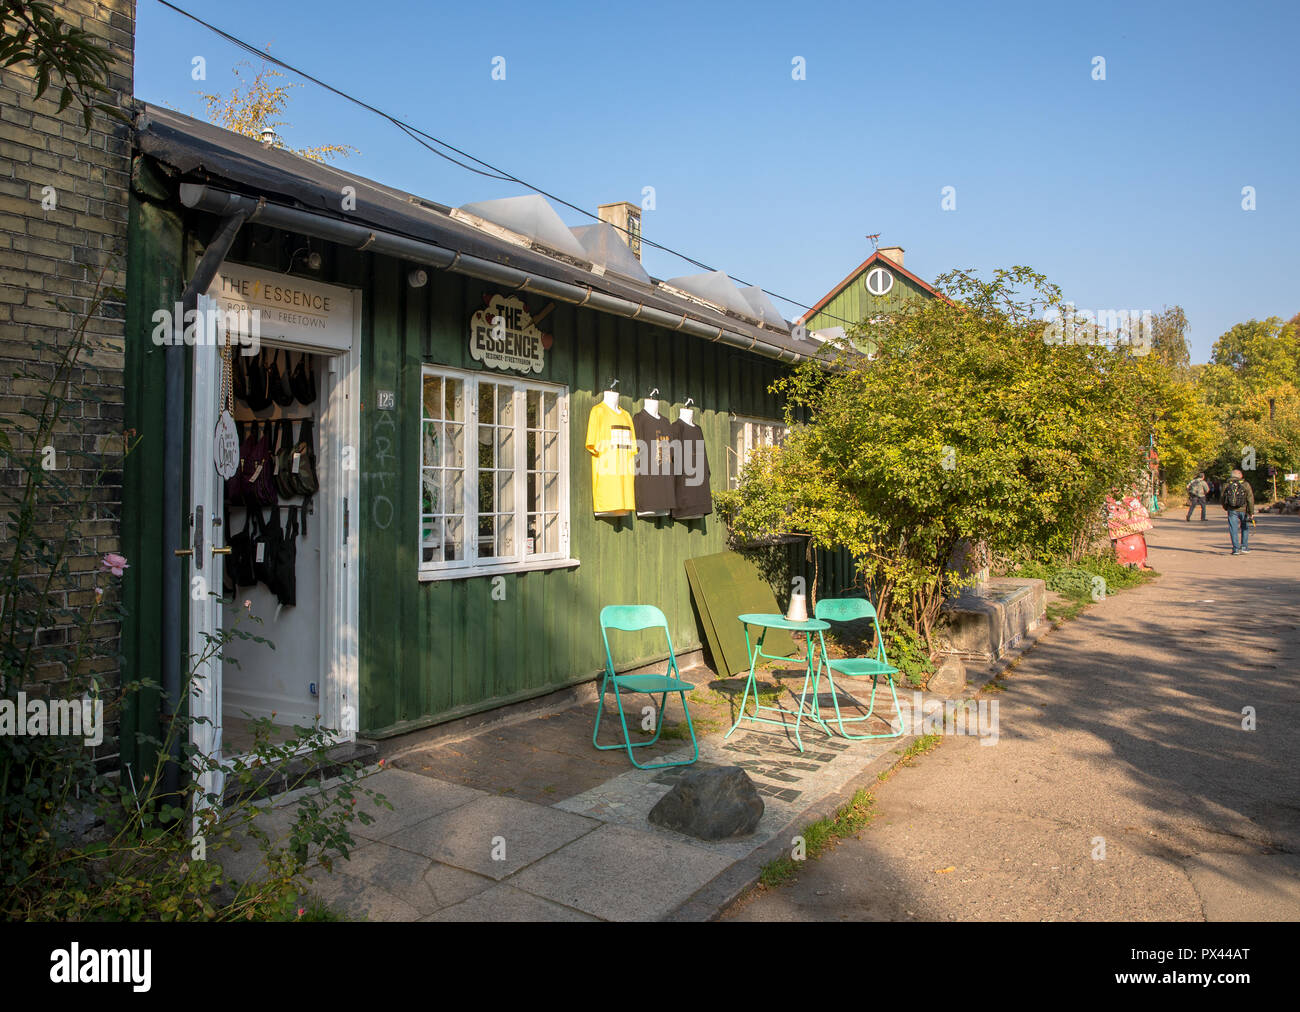 COPENHAGEN, DENMARK - October 2018: Small shop in Freetown Christiania, a self-proclaimed autonomous neighbourhood in Copenhagen. Stock Photo